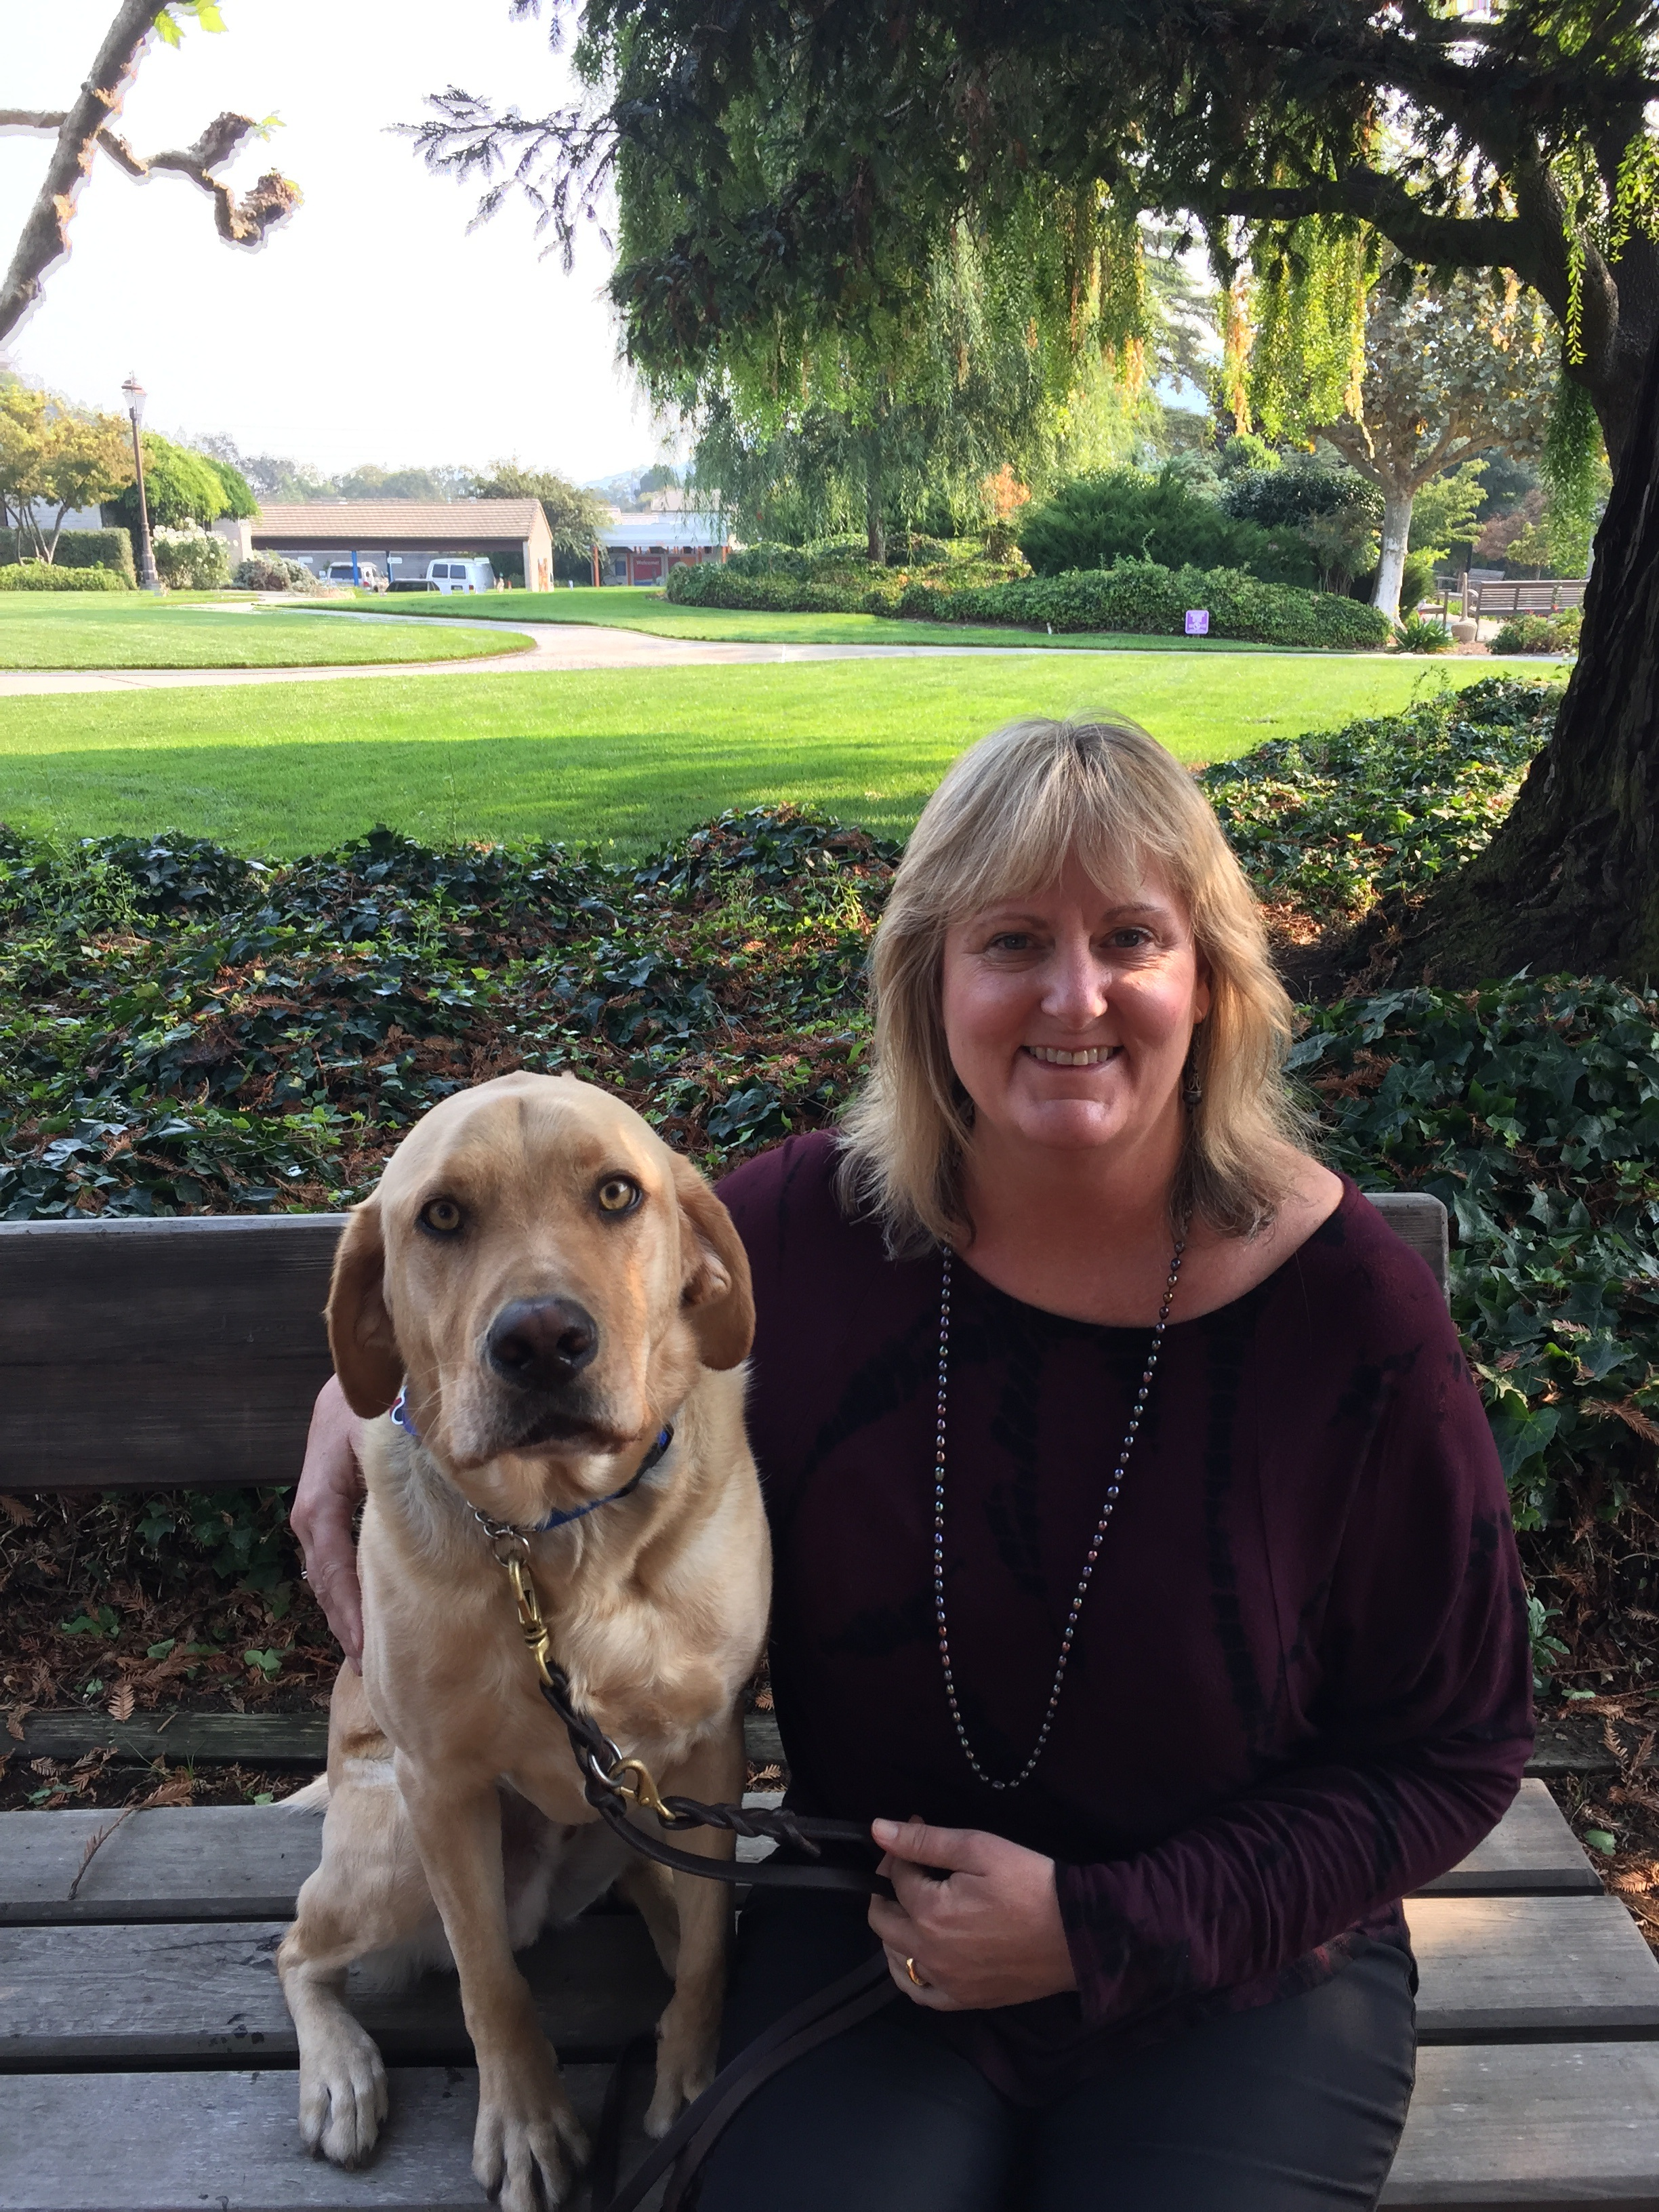 Sheri sits on a bench on GDB's CA campus. She has her arm around a yellow Lab.